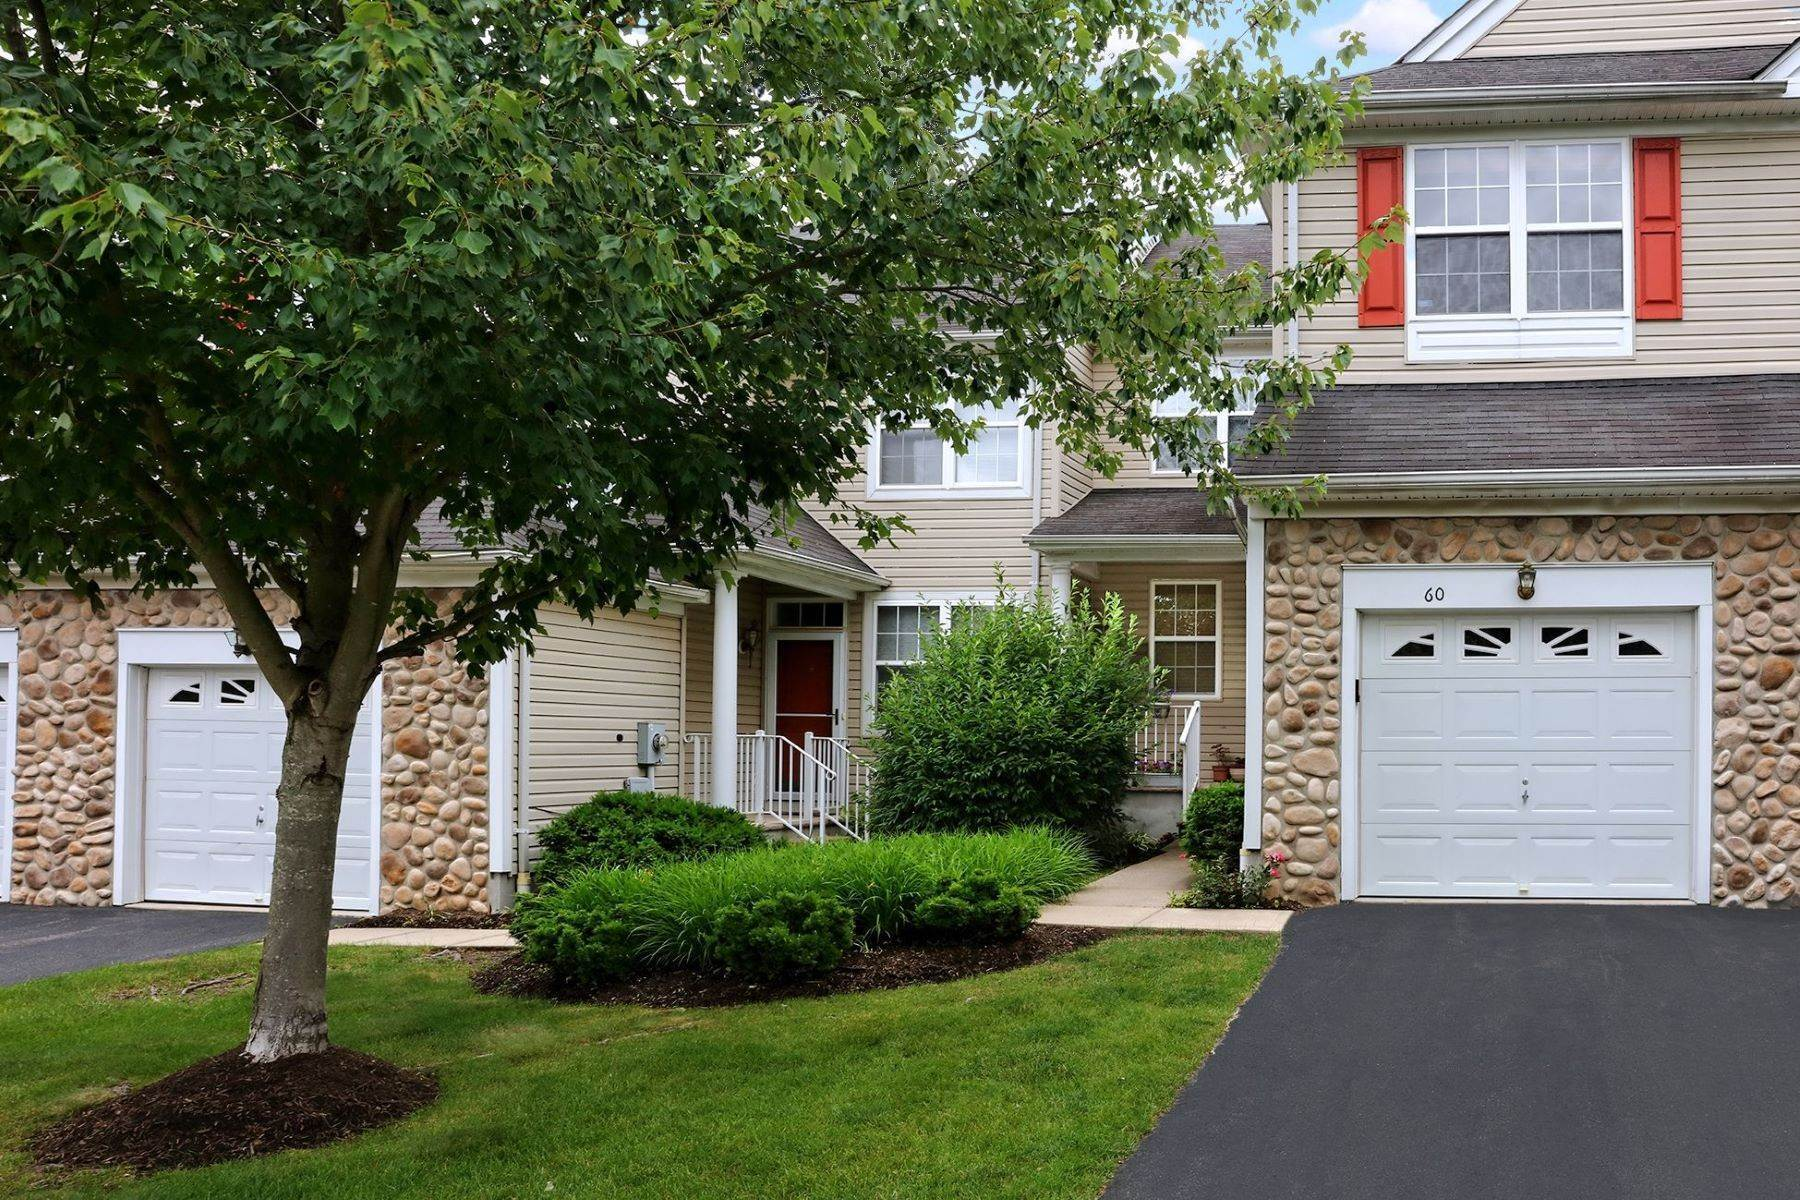 townhouses for Sale at Abundance of Natural Light 60 Scarlet Oak Drive Princeton, New Jersey 08540 United States